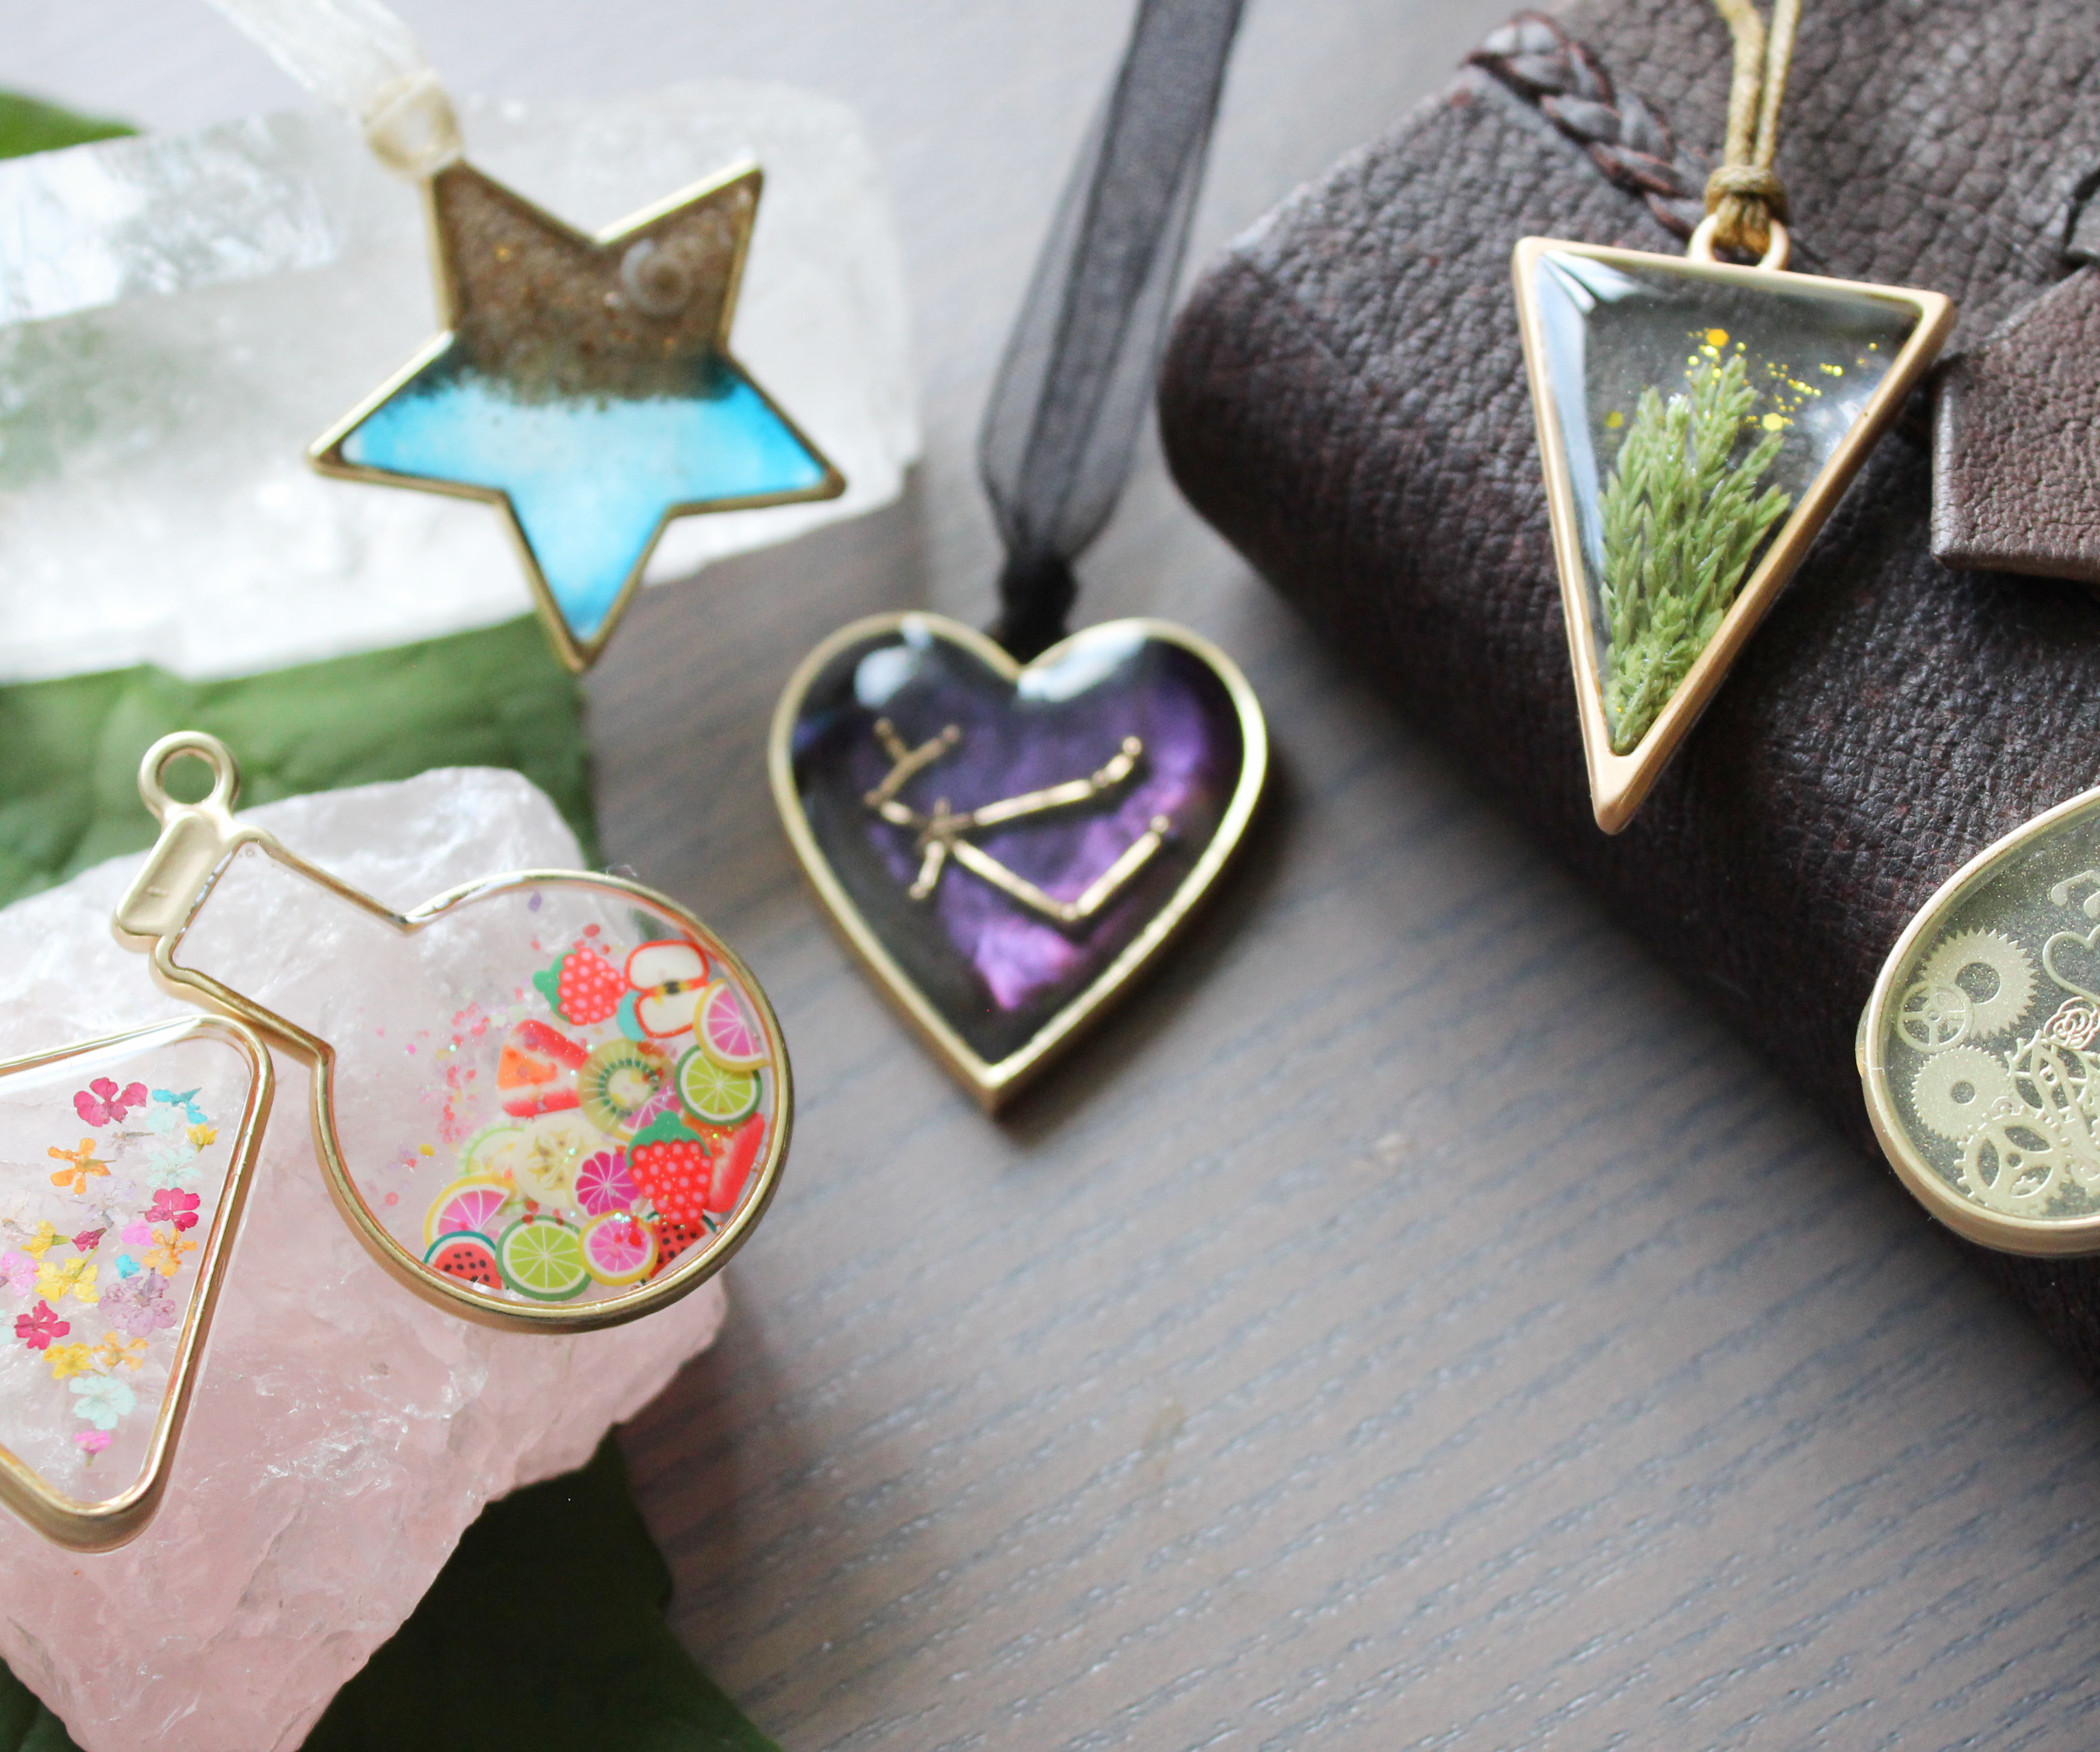 How to Work With Epoxy Resin and Frame Pendants